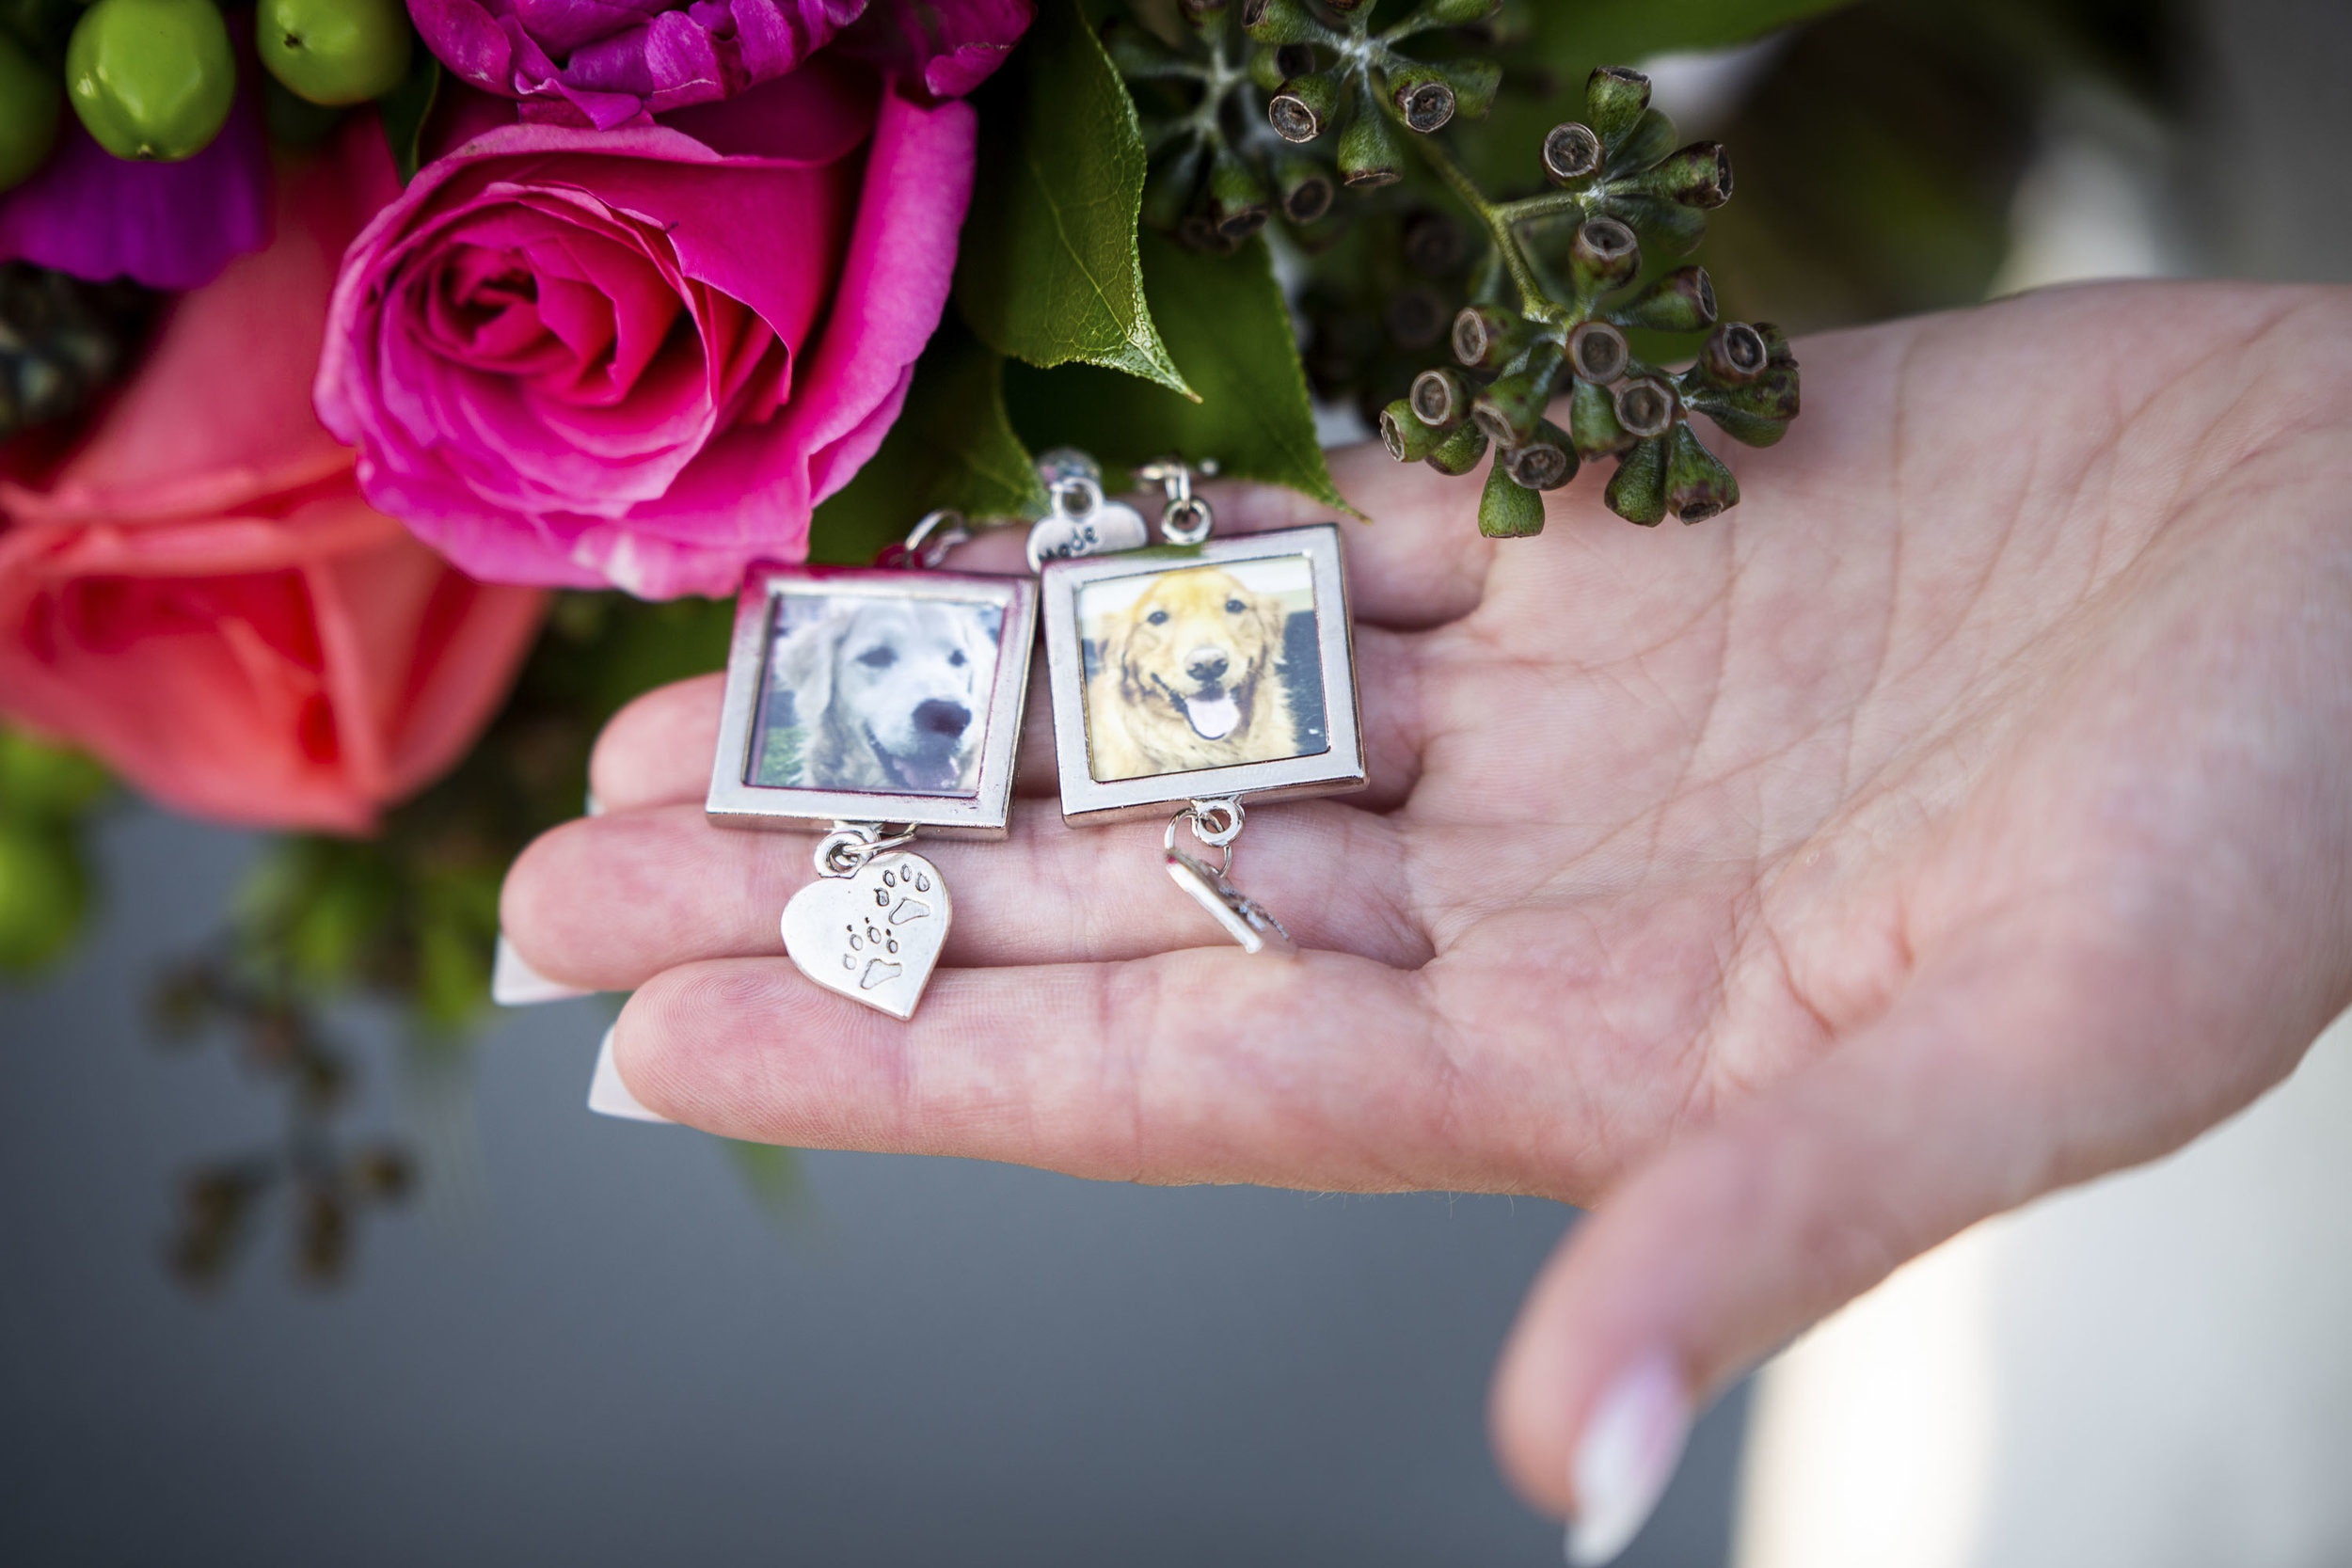 Unique wedding idea bringing deceased pets to wedding as charms on the bouquet